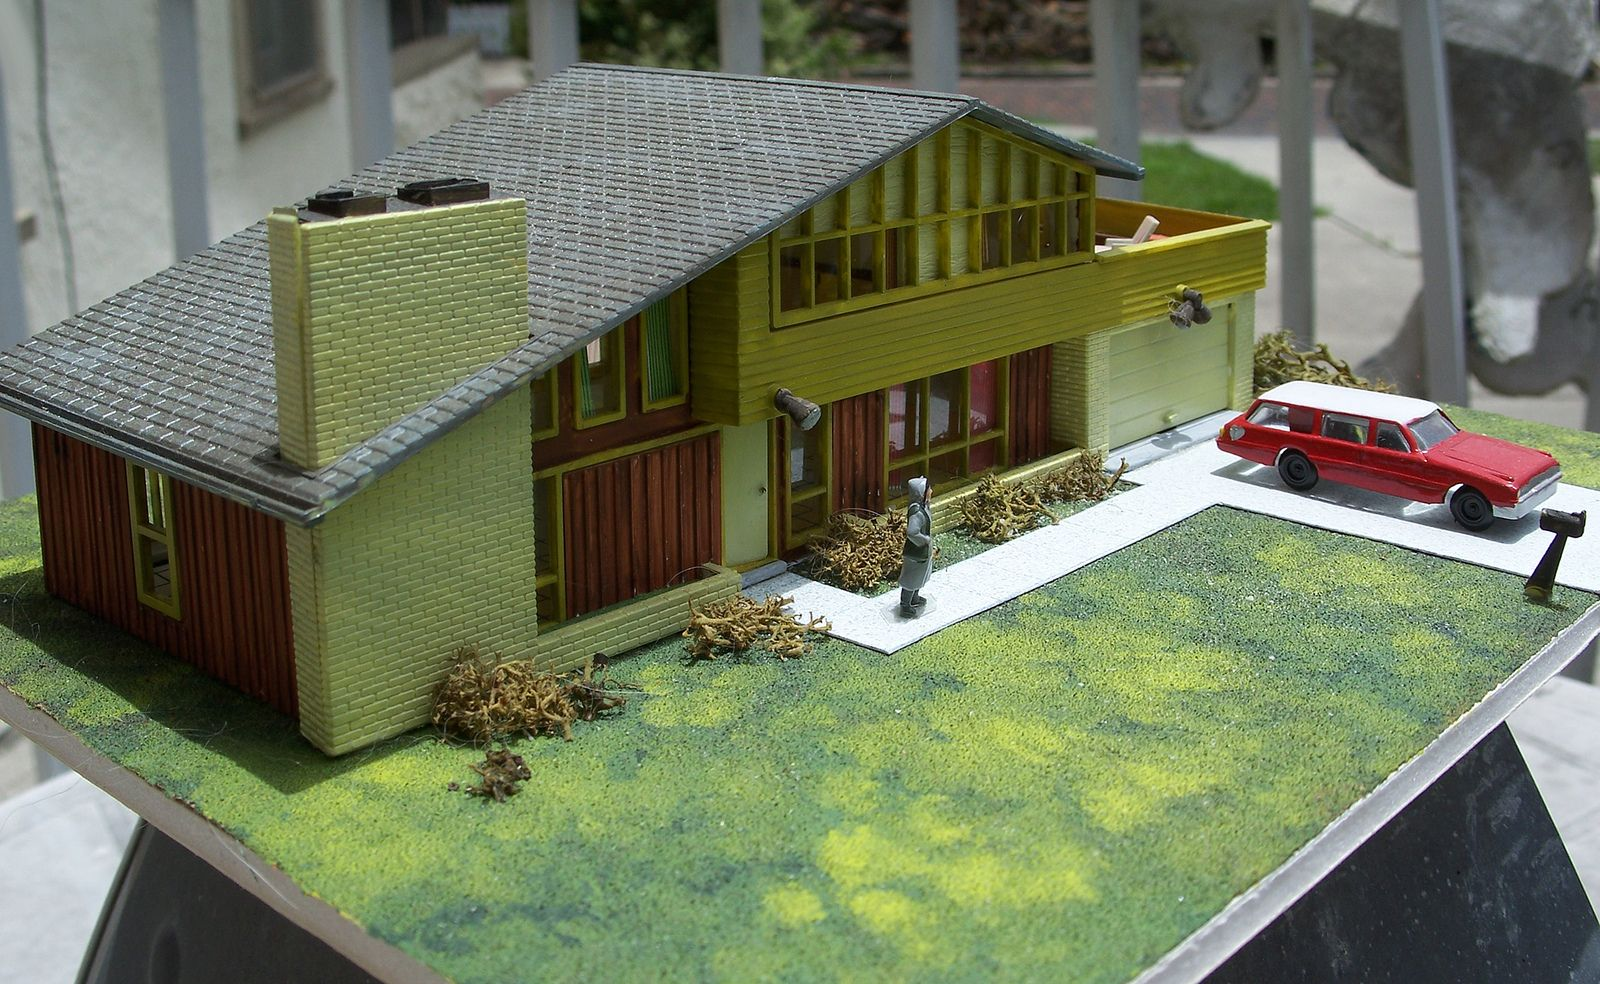 Building small model houses